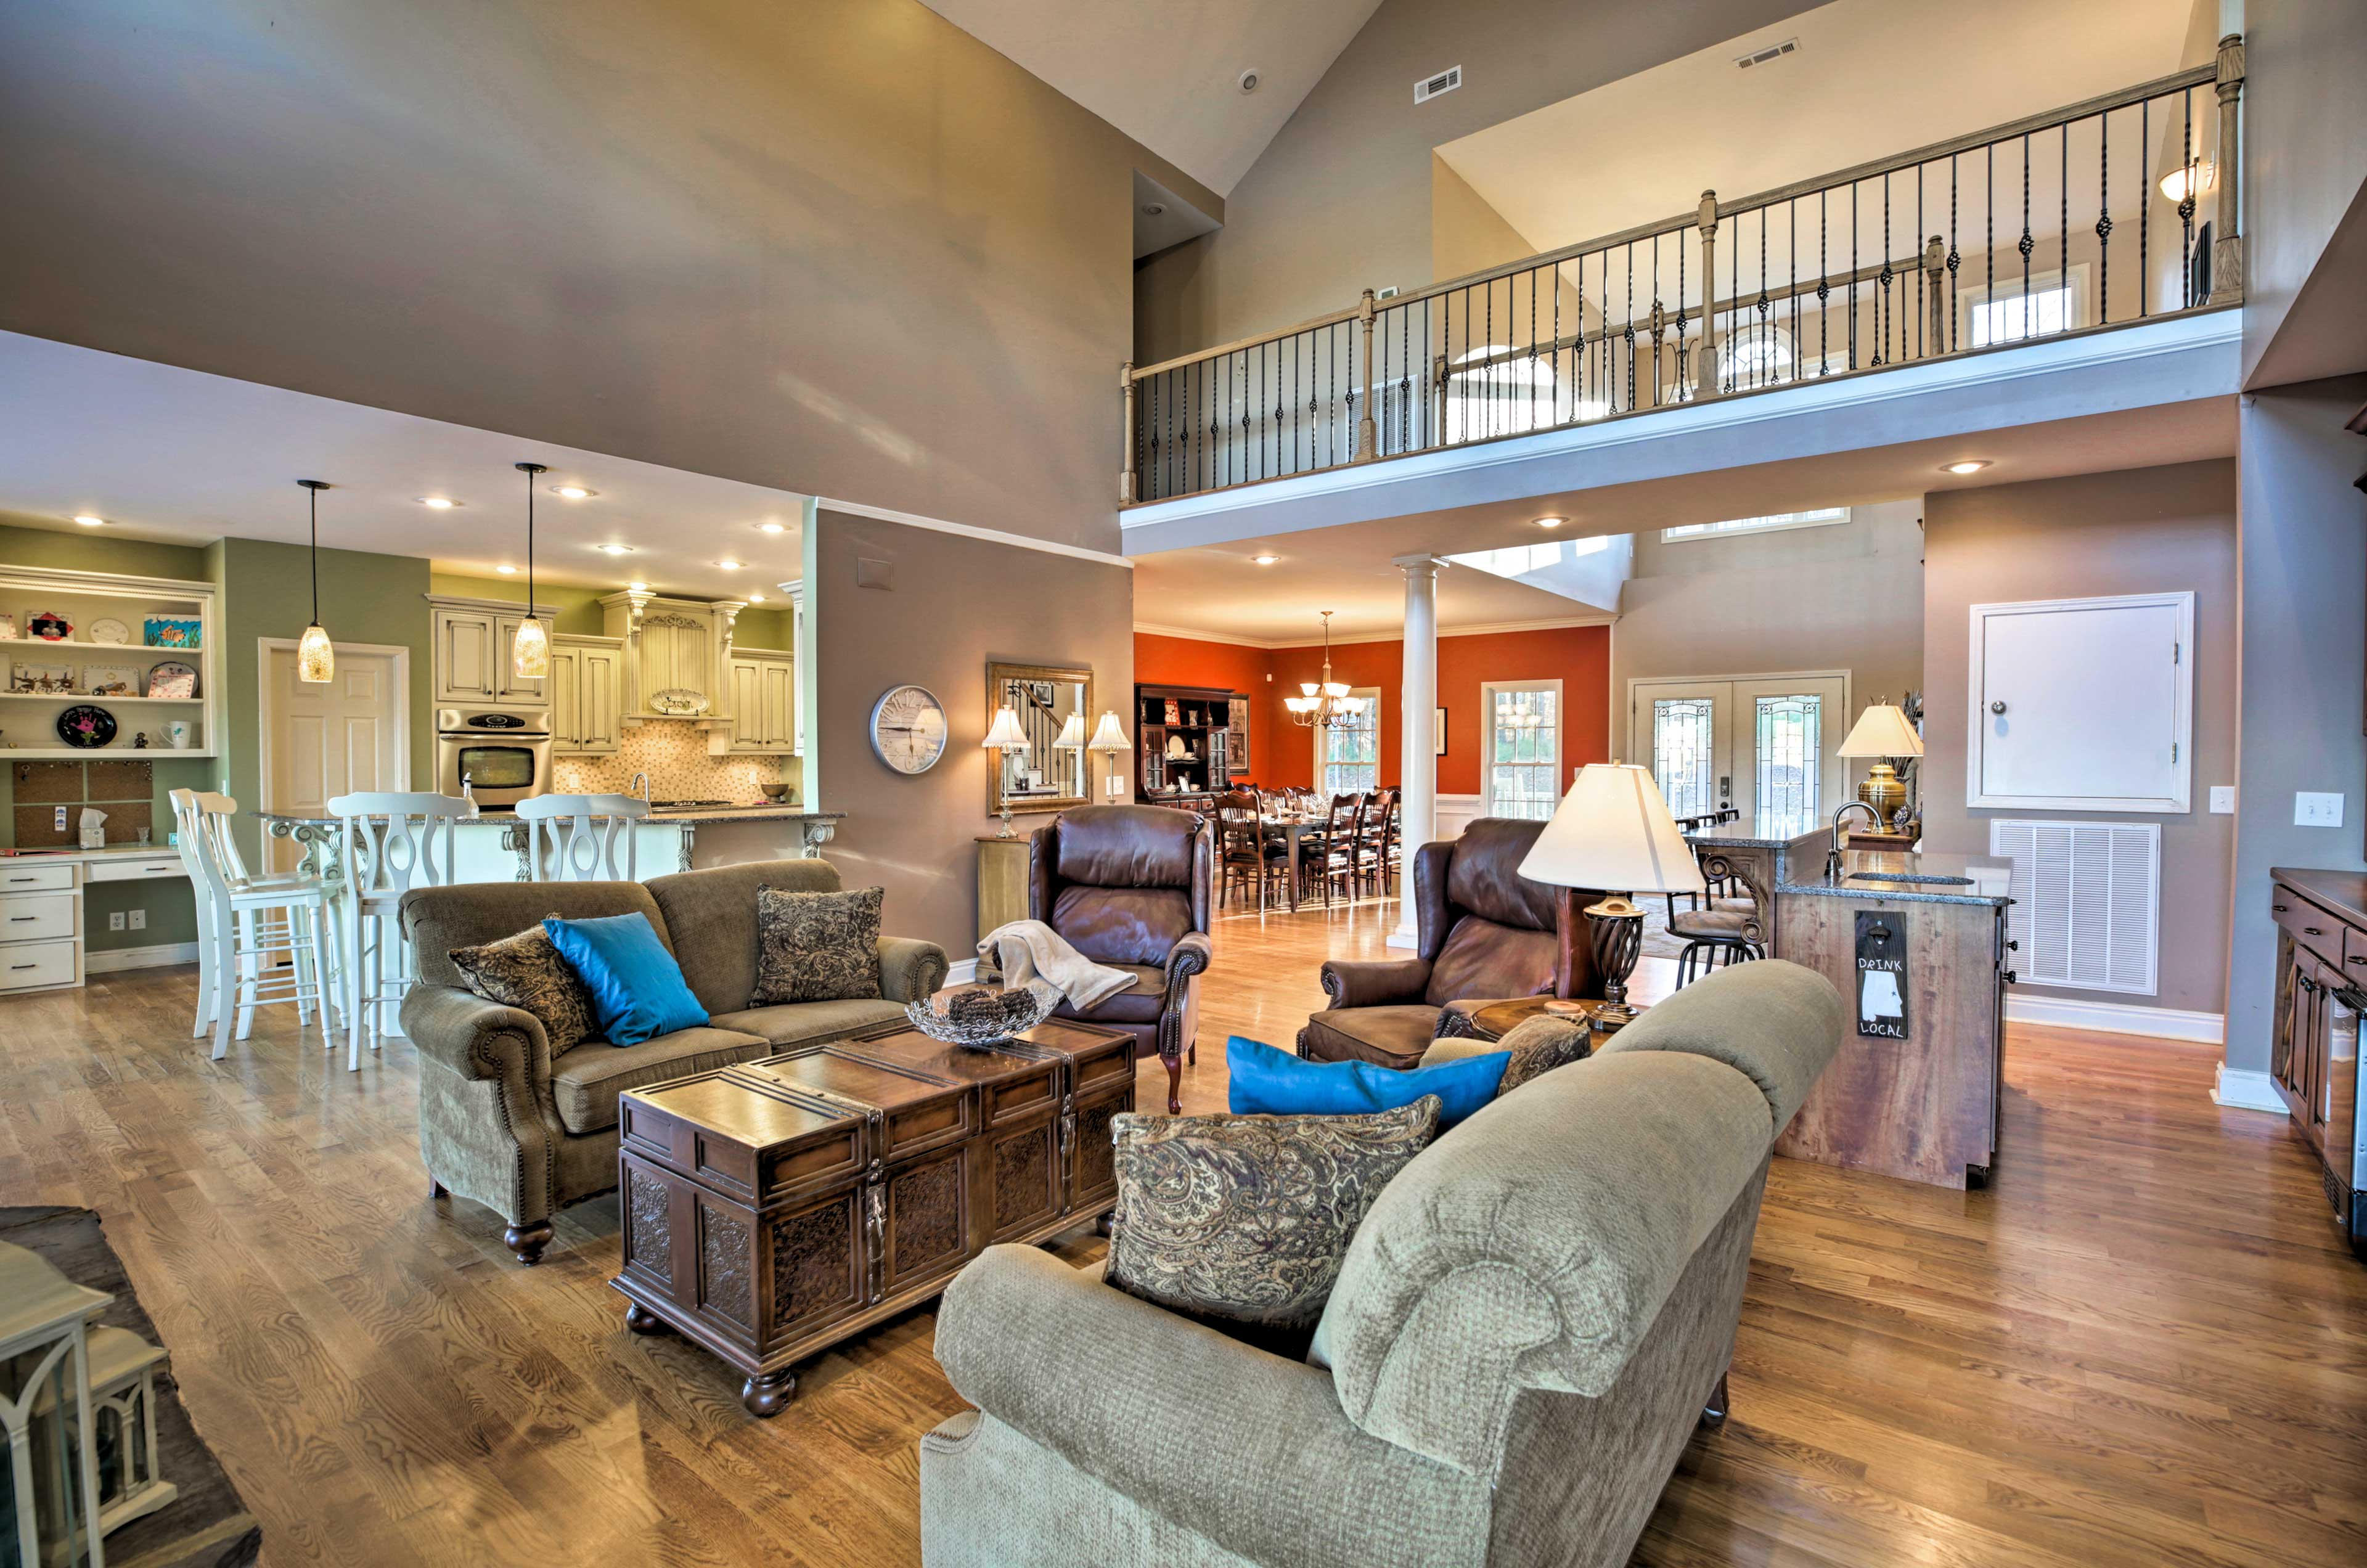 The 4-bedroom property features 4,000 square feet and sleeps 11 guests.